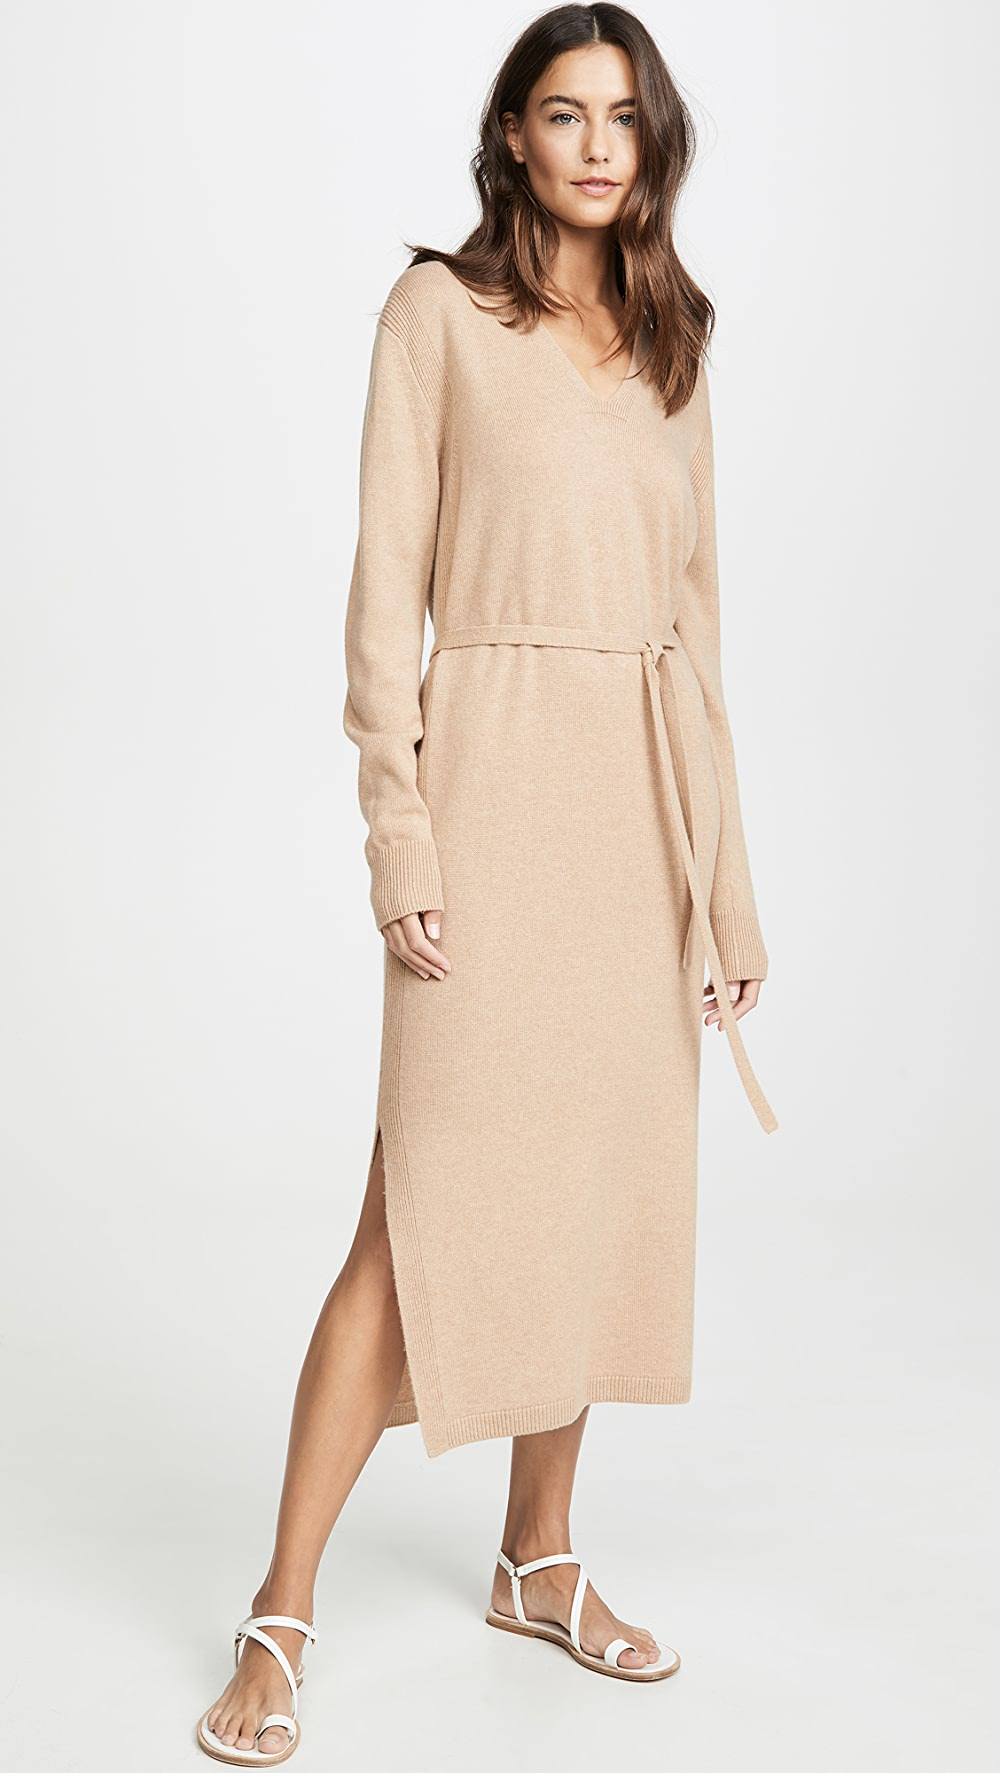 Imported From Abroad Vince - V Neck Slit Dress Clear-Cut Texture